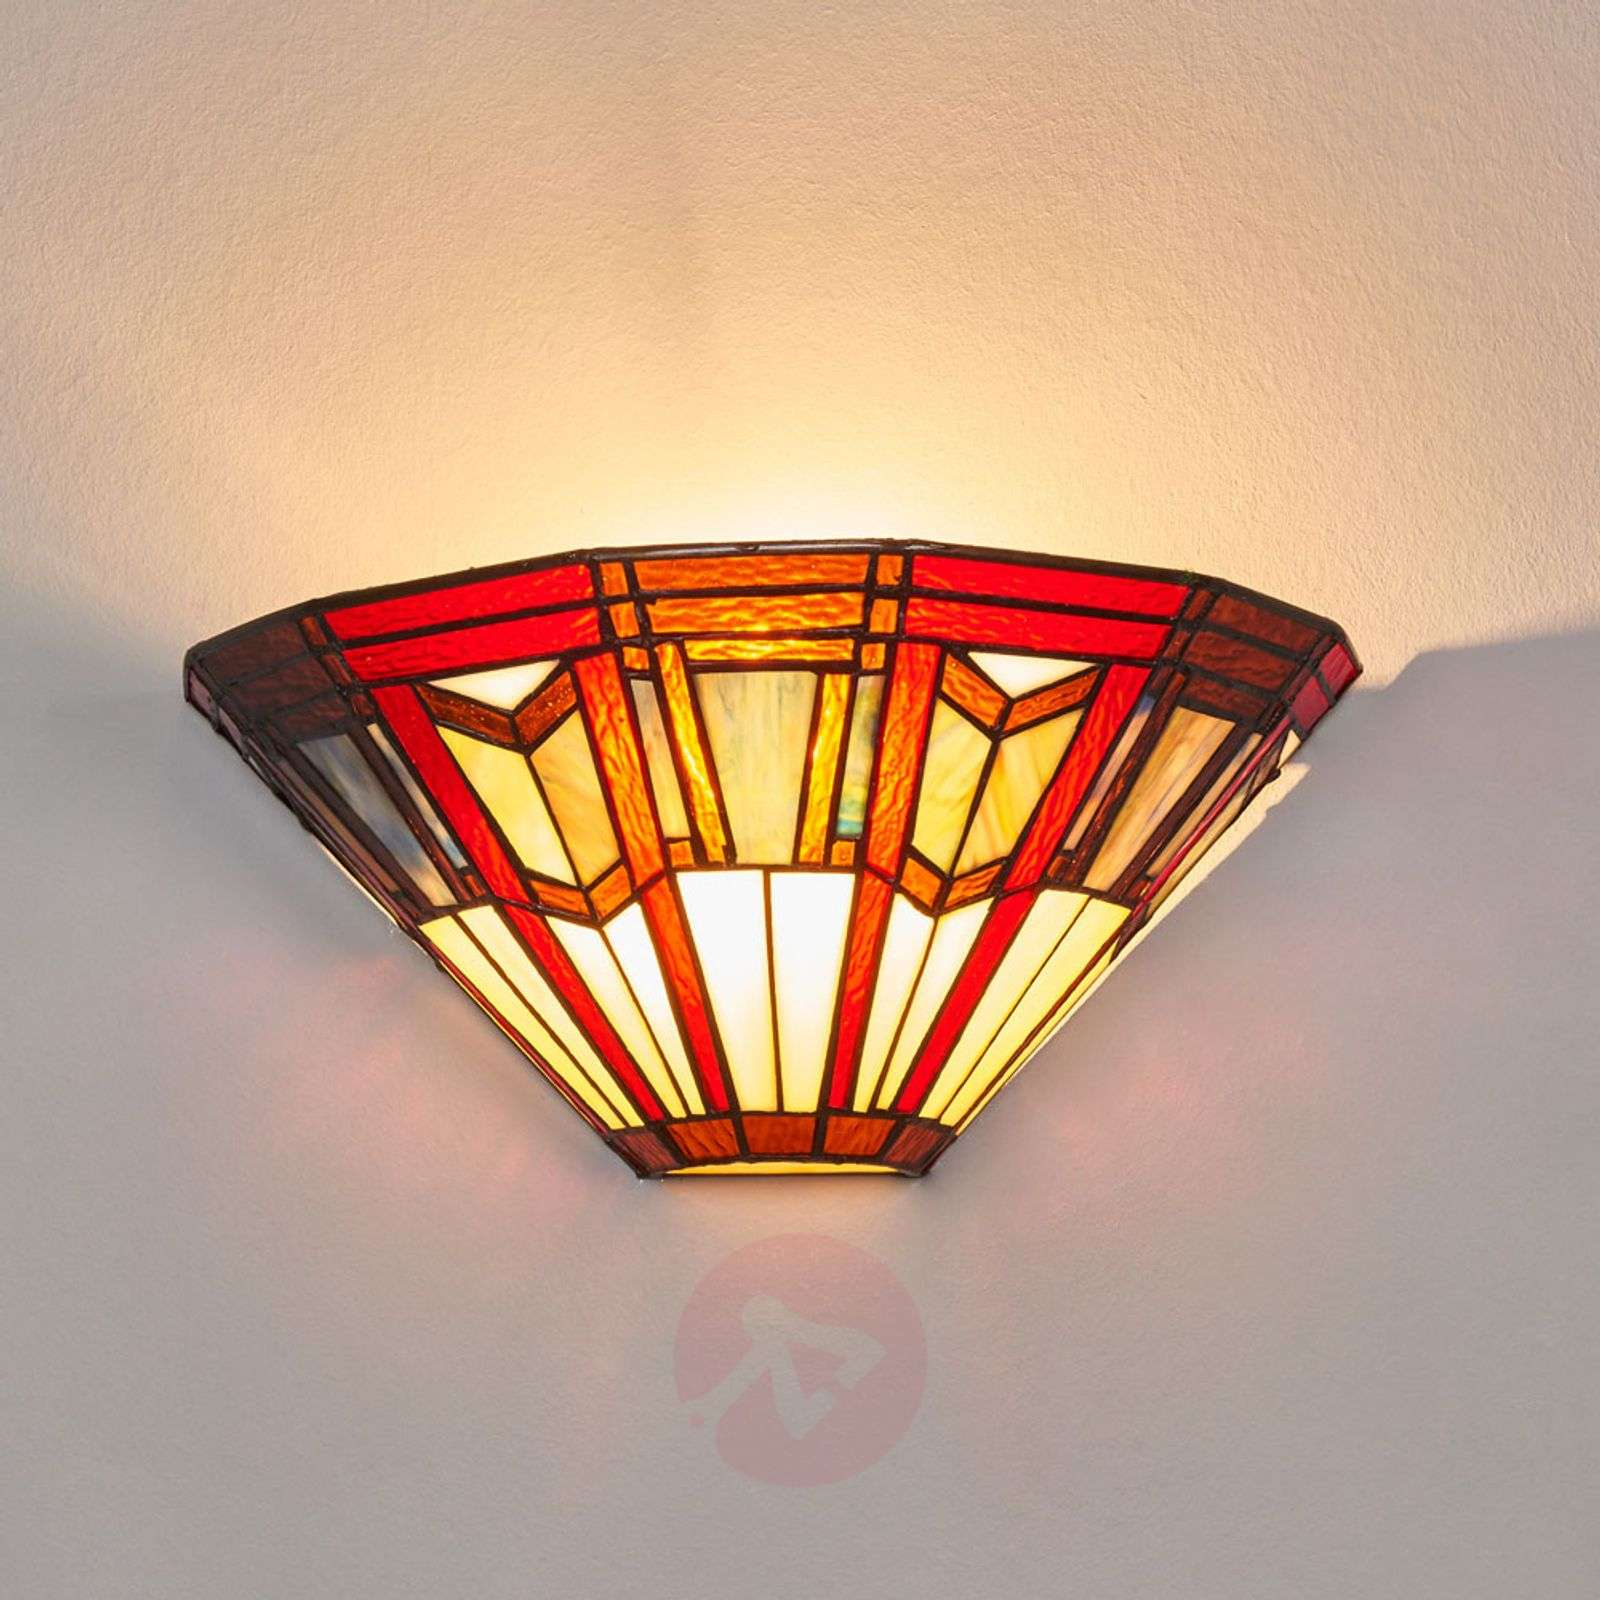 LILLIE wall light in Tiffany style-1032024-01